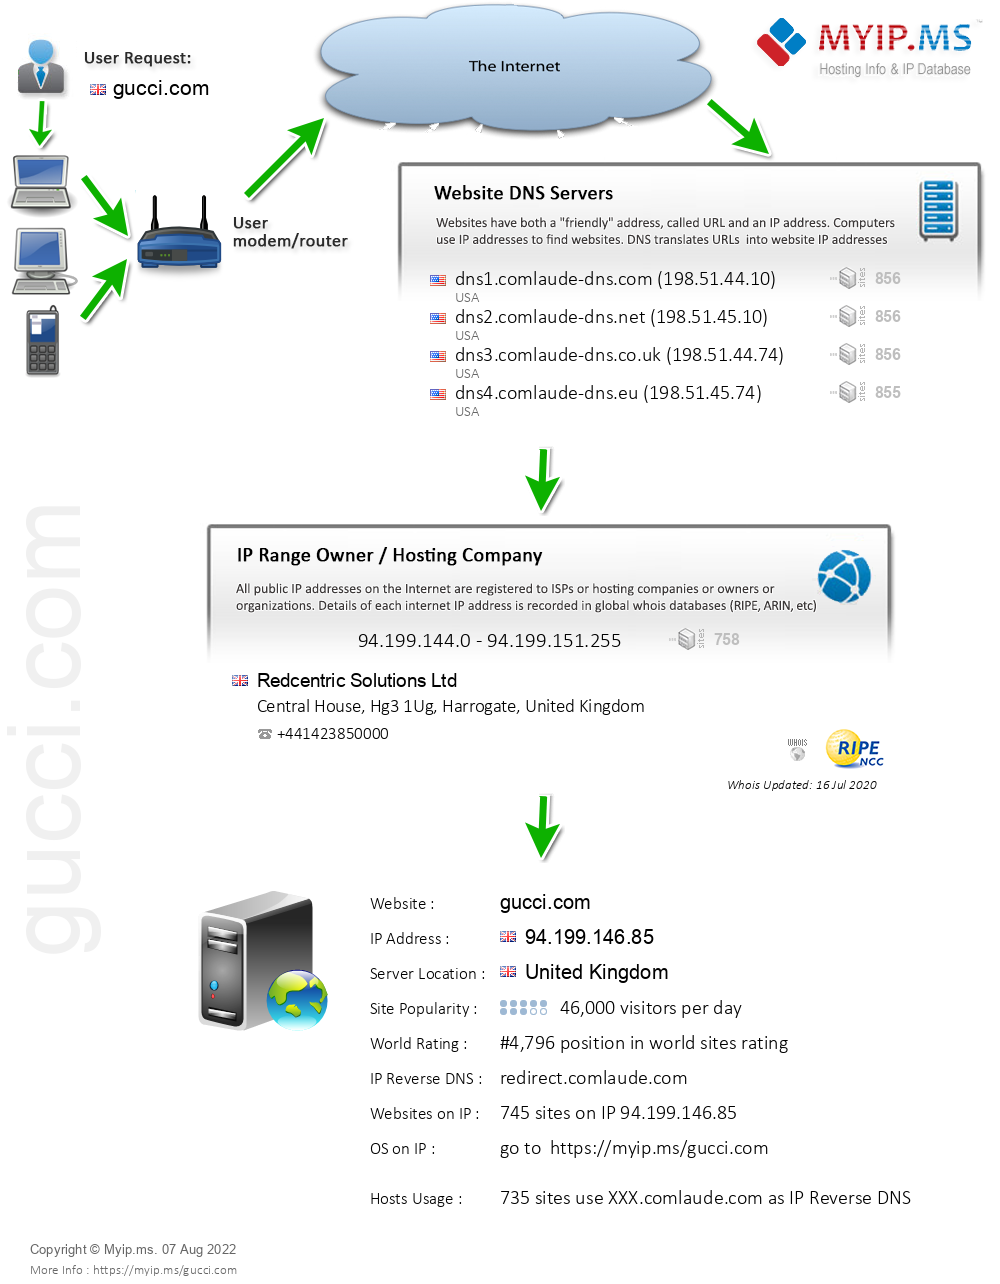 Gucci.com - Website Hosting Visual IP Diagram